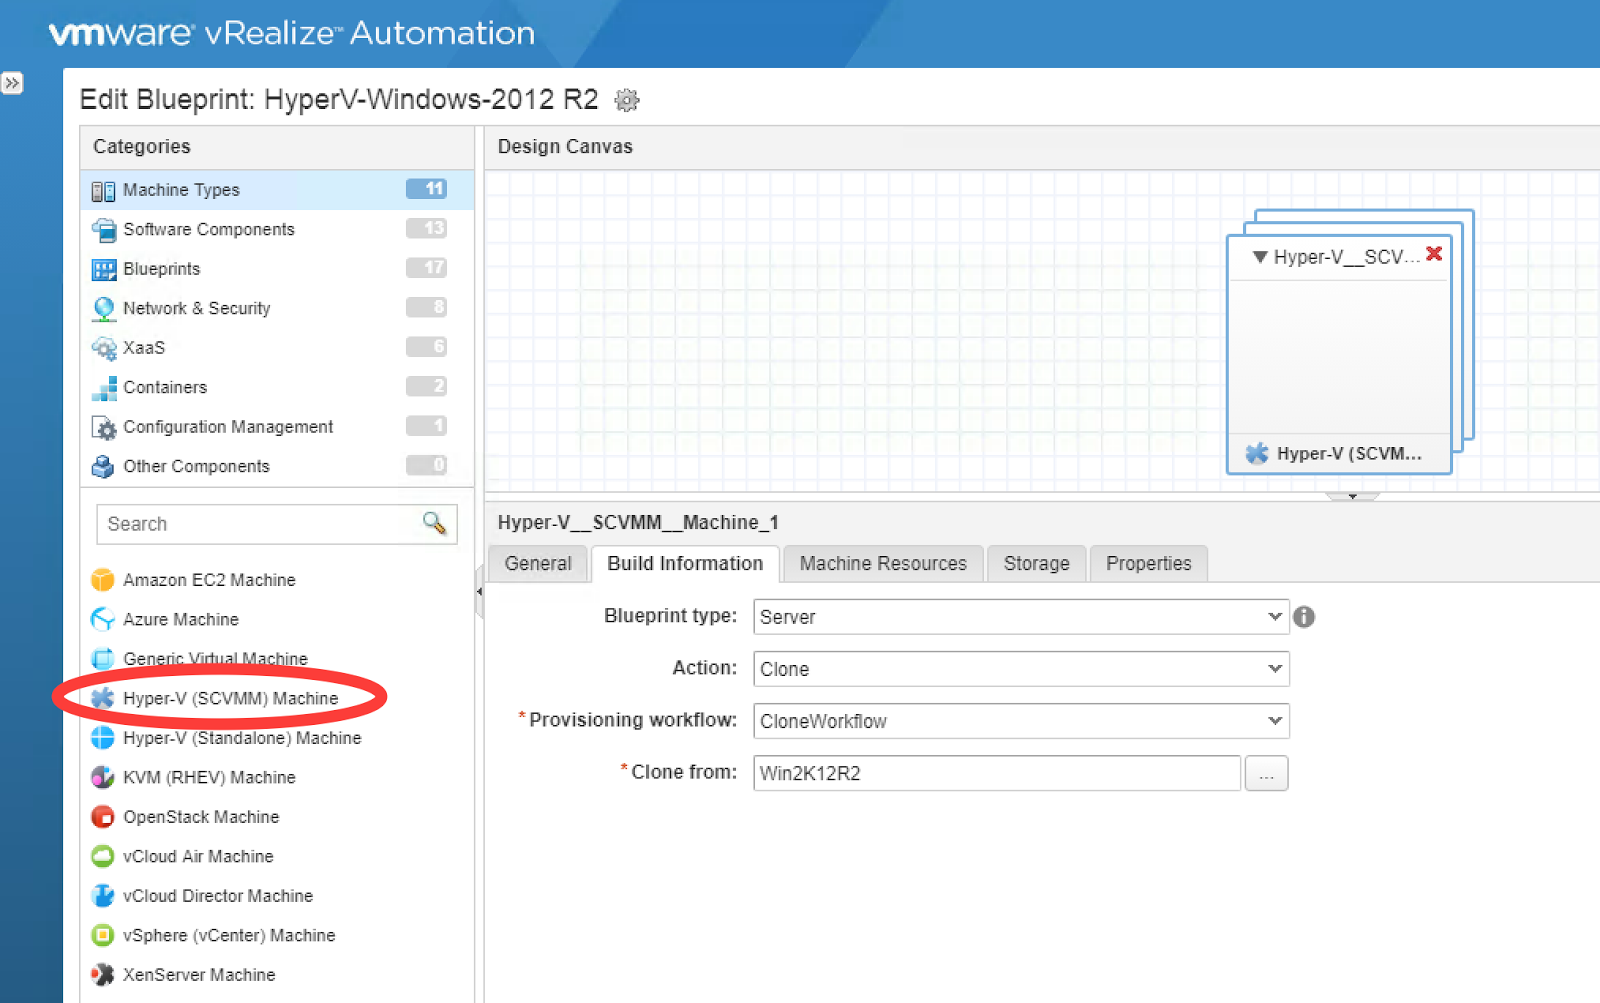 Vinsideout vrealize automation 73 integration with scvmm 2012 r2 create fabric group reservation tagged to a business group reservation policy etc and then move on to the blueprint design malvernweather Choice Image